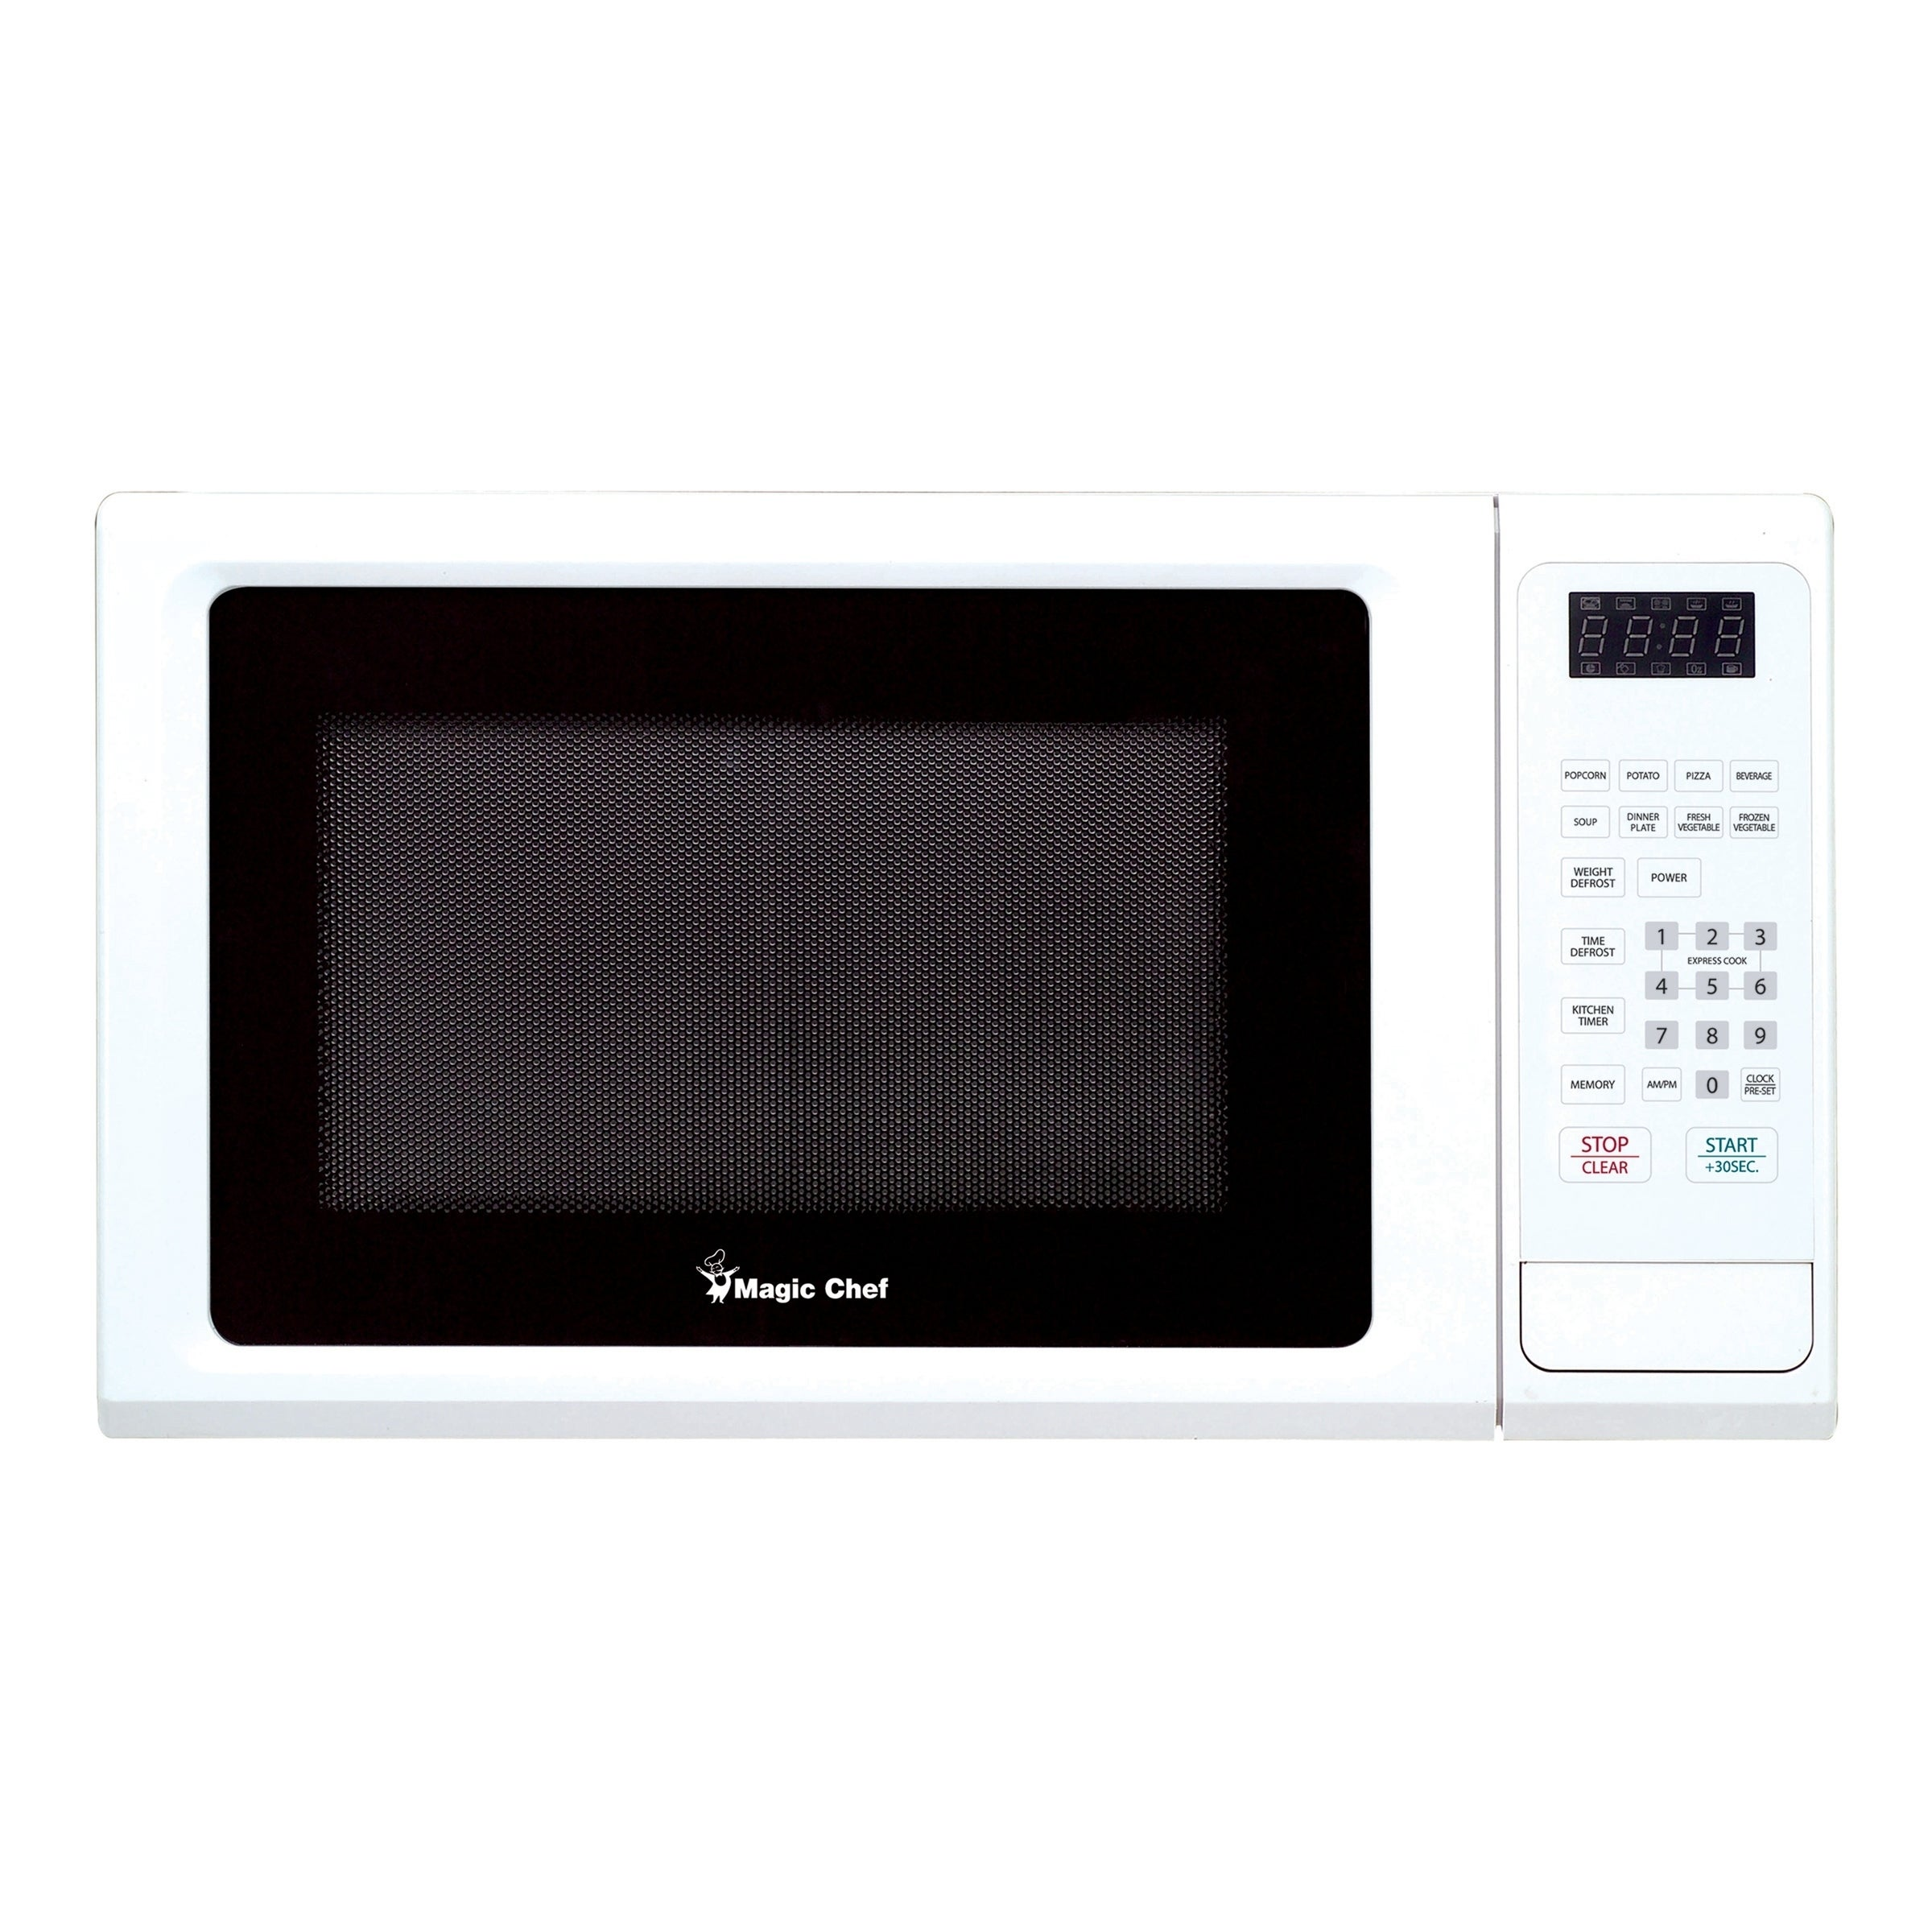 Magic Chef 1.1 Cubic Ft. Countertop Microwave Oven - Whit...